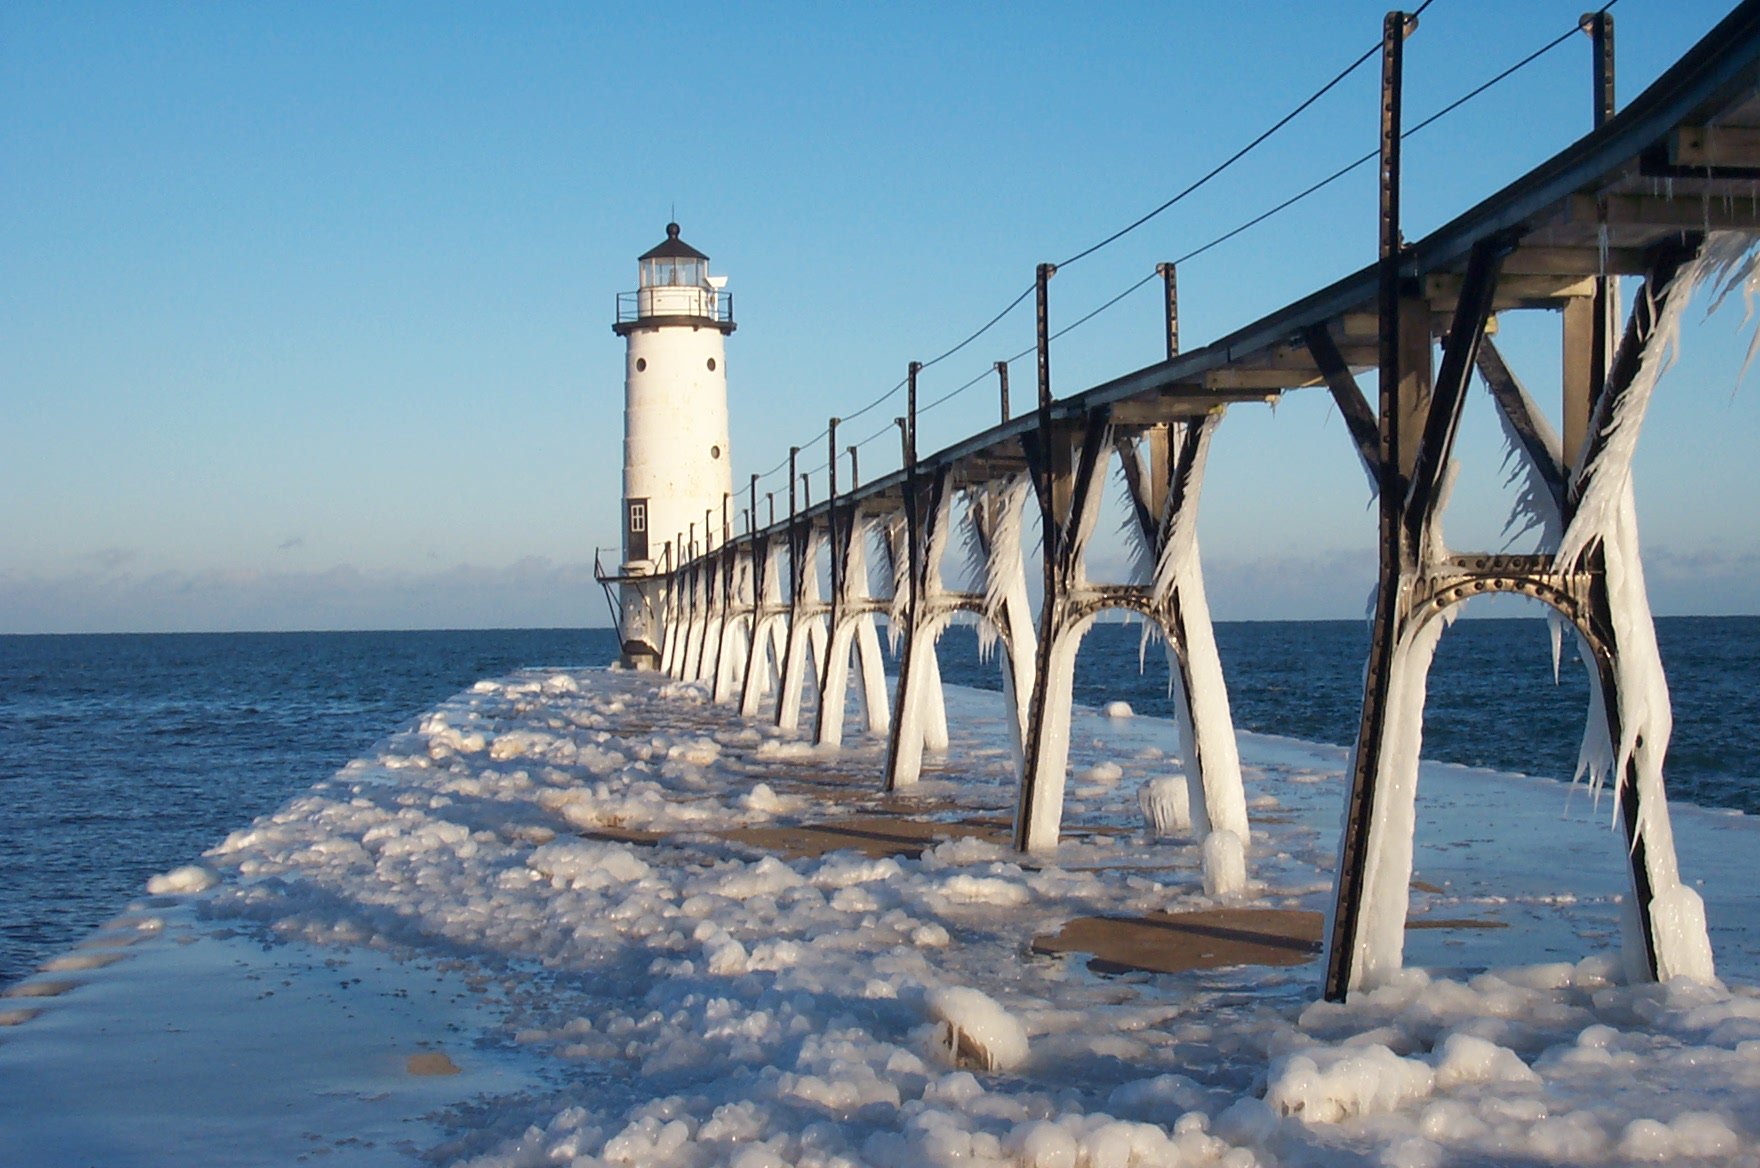 Sunny winter day with ice and snow on the pier and catwalk leading up to the lighthouse at Fifth Avenue